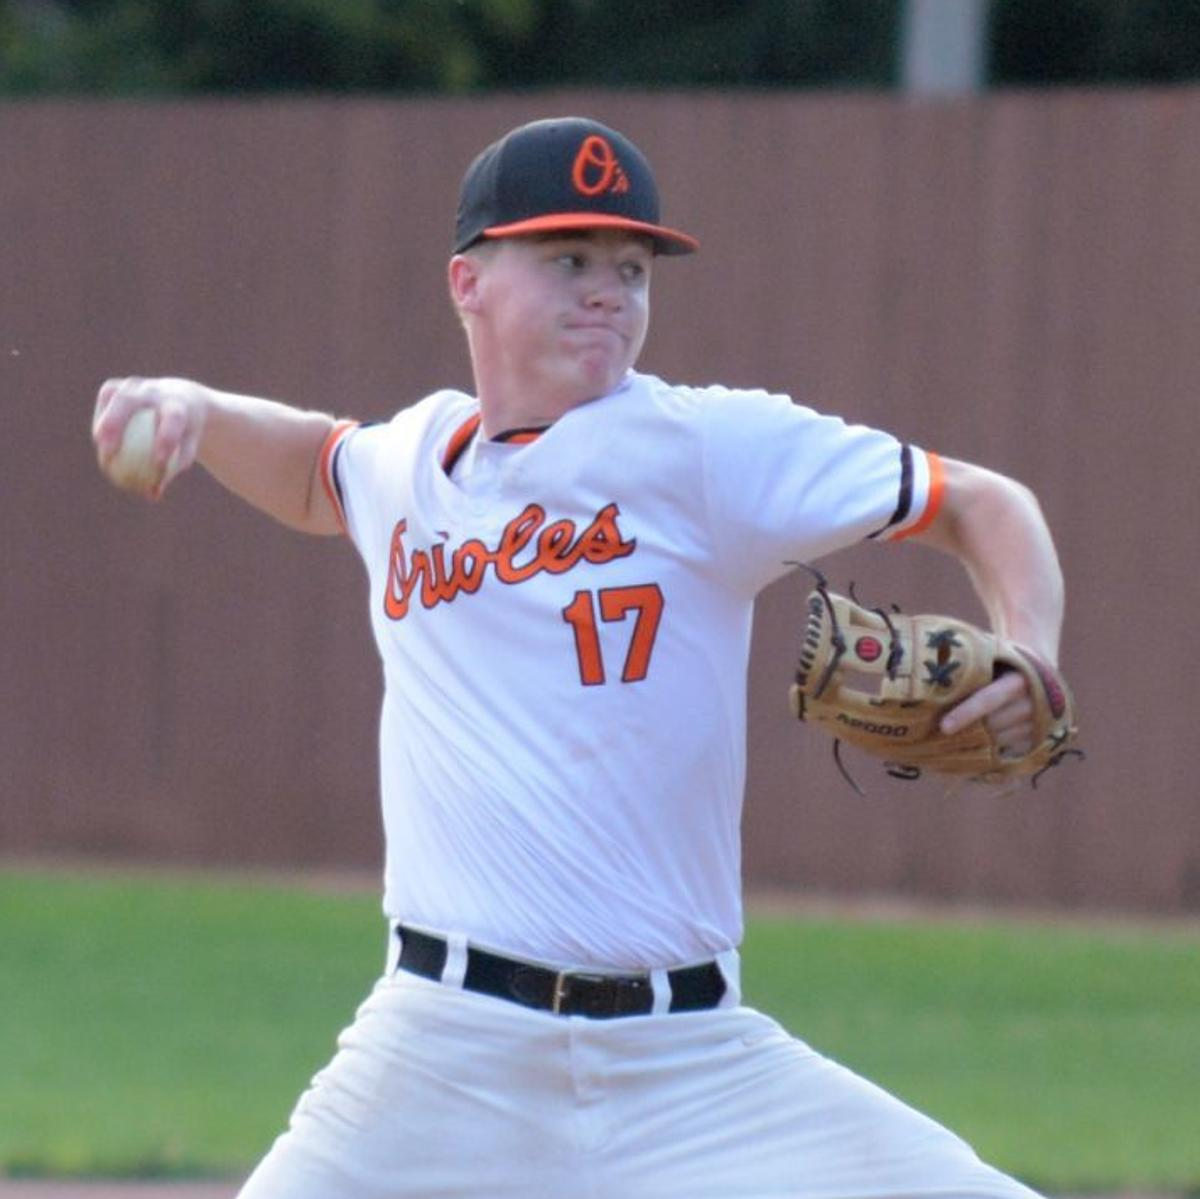 Orioles dismiss reigning champs | Local Sports | dailyjournalonline com